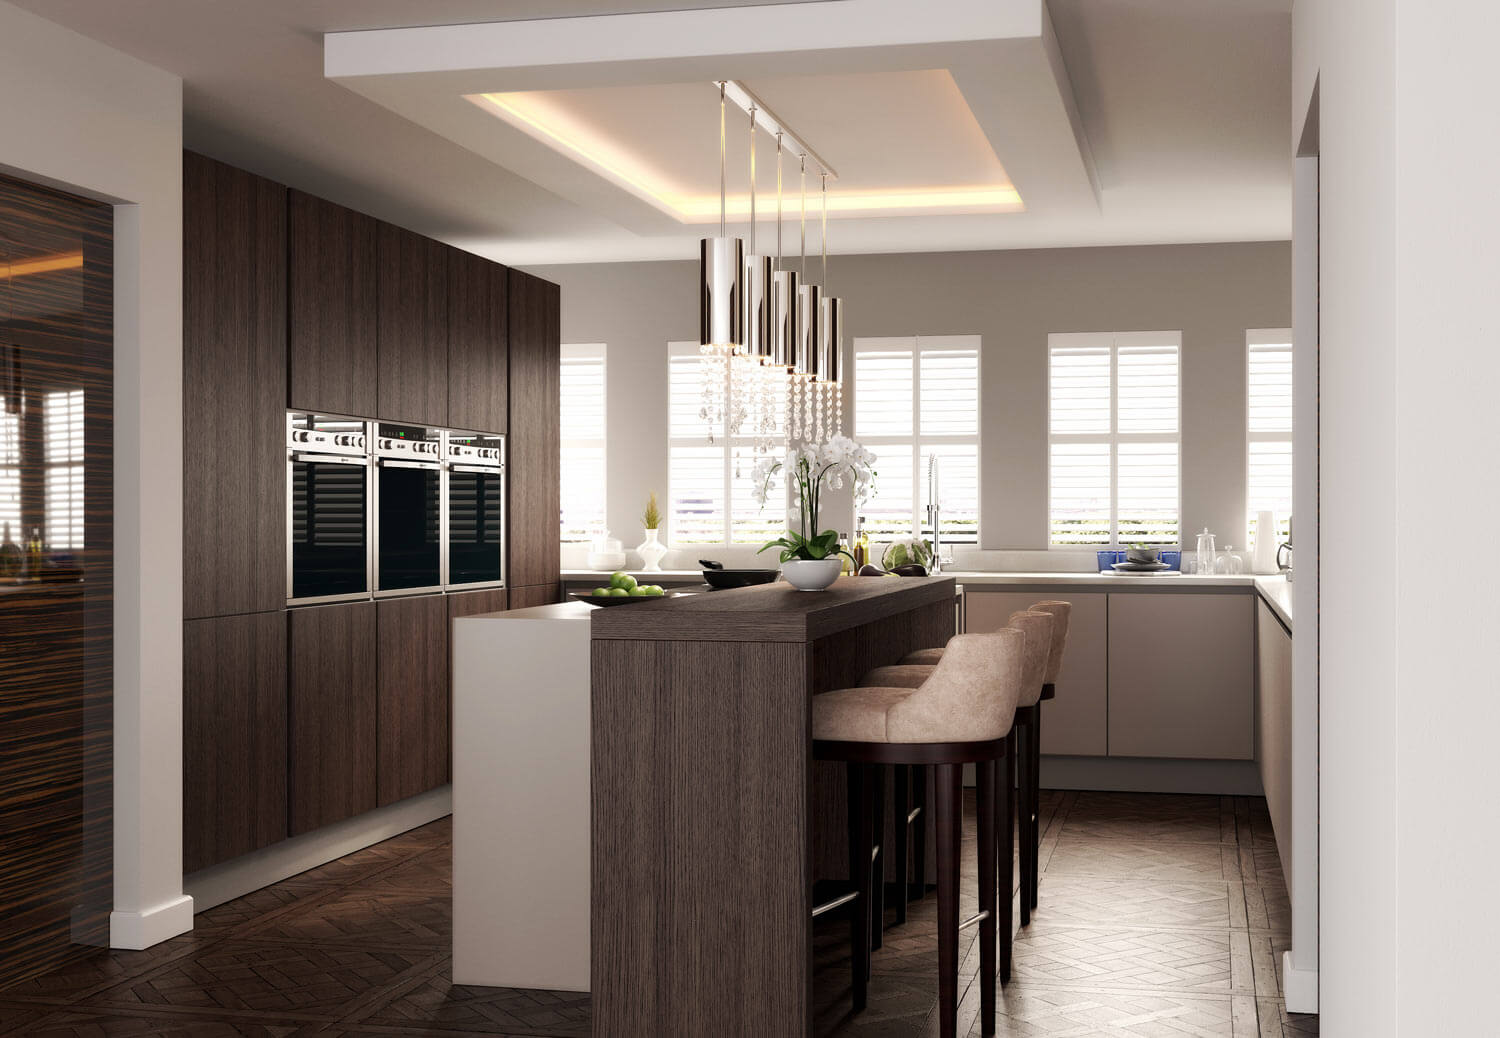 Beautiful CGI rendering of a modern kitchen, with central breakfast bar, triple wall-mounted ovens and attractive feature lighting.